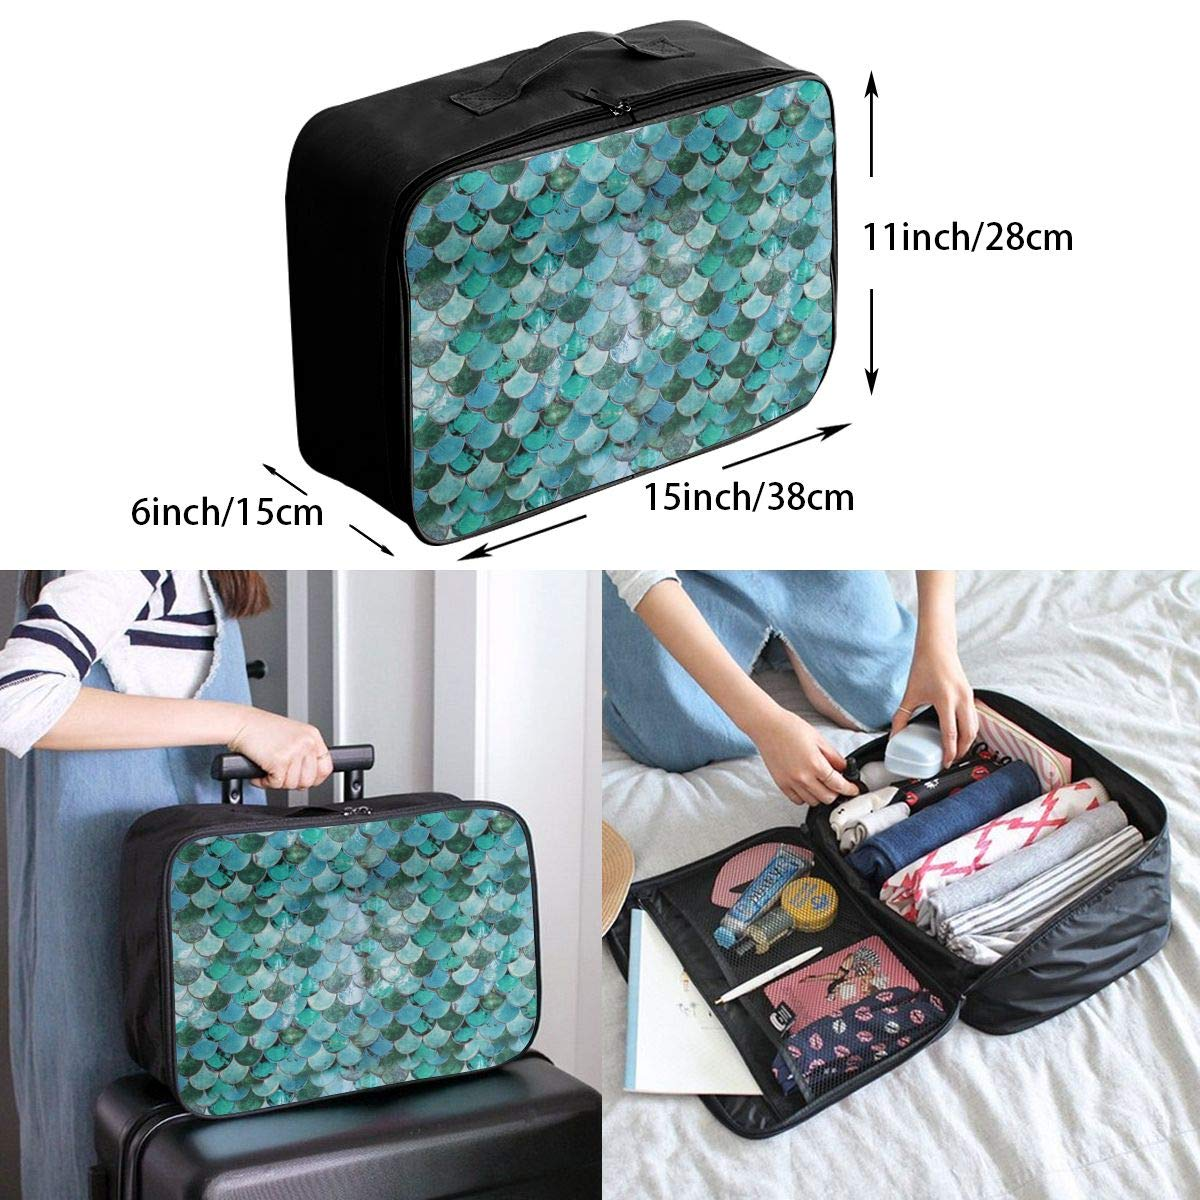 Charming Hawaii Flower Overnight Bag Makeup Bag Case Sports Party Travel Duffle Bag Weekend Bags In Trolley Handle Nylon Lightweight Hand Bag Waterproof Toiletry Bag